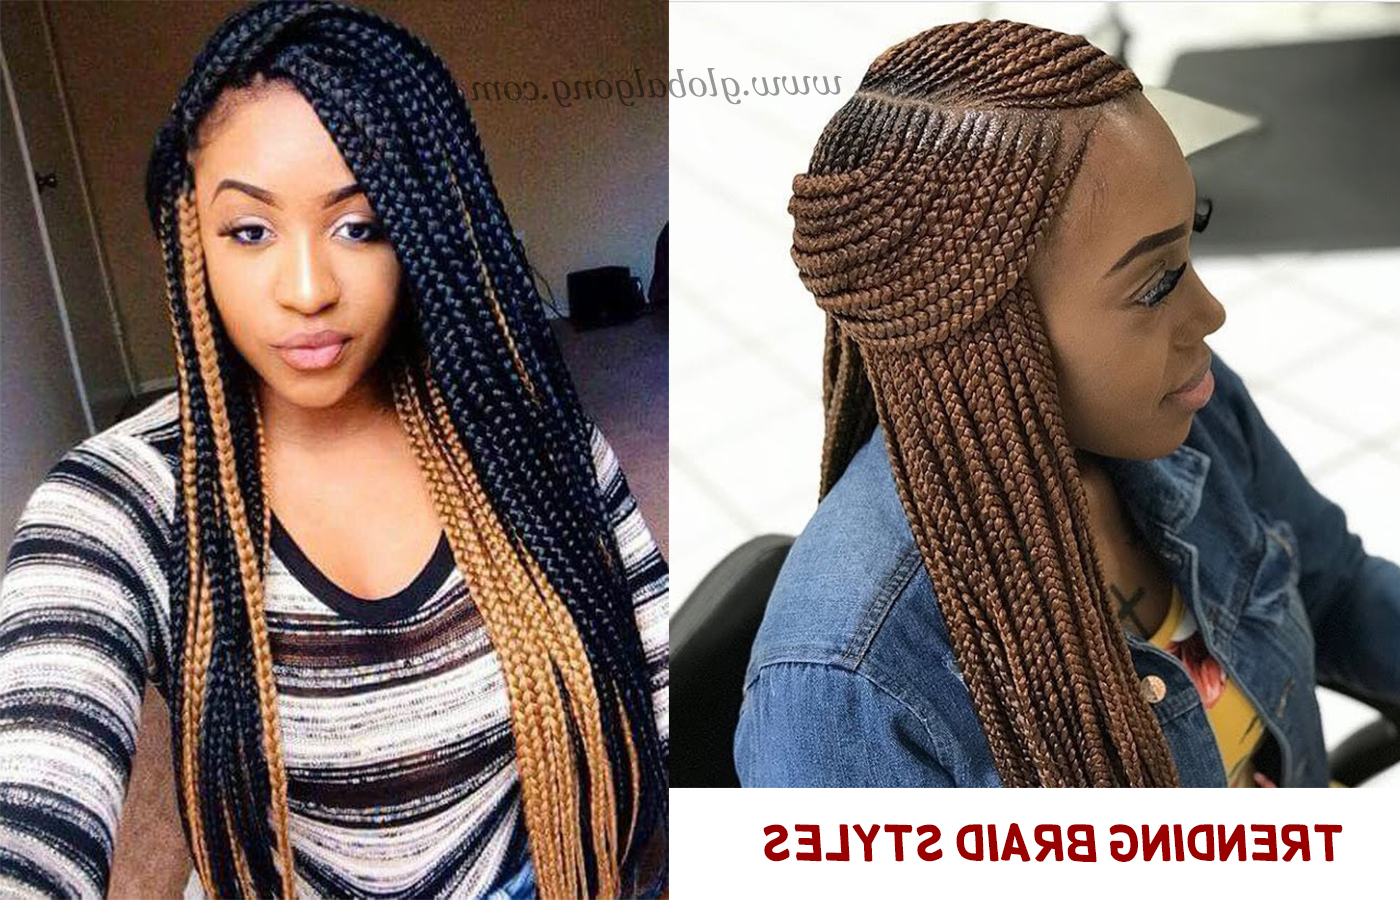 The Most Popular Trending Braid Styles With Extensions For Well Known Blue Sunset Skinny Braided Hairstyles (Gallery 14 of 20)